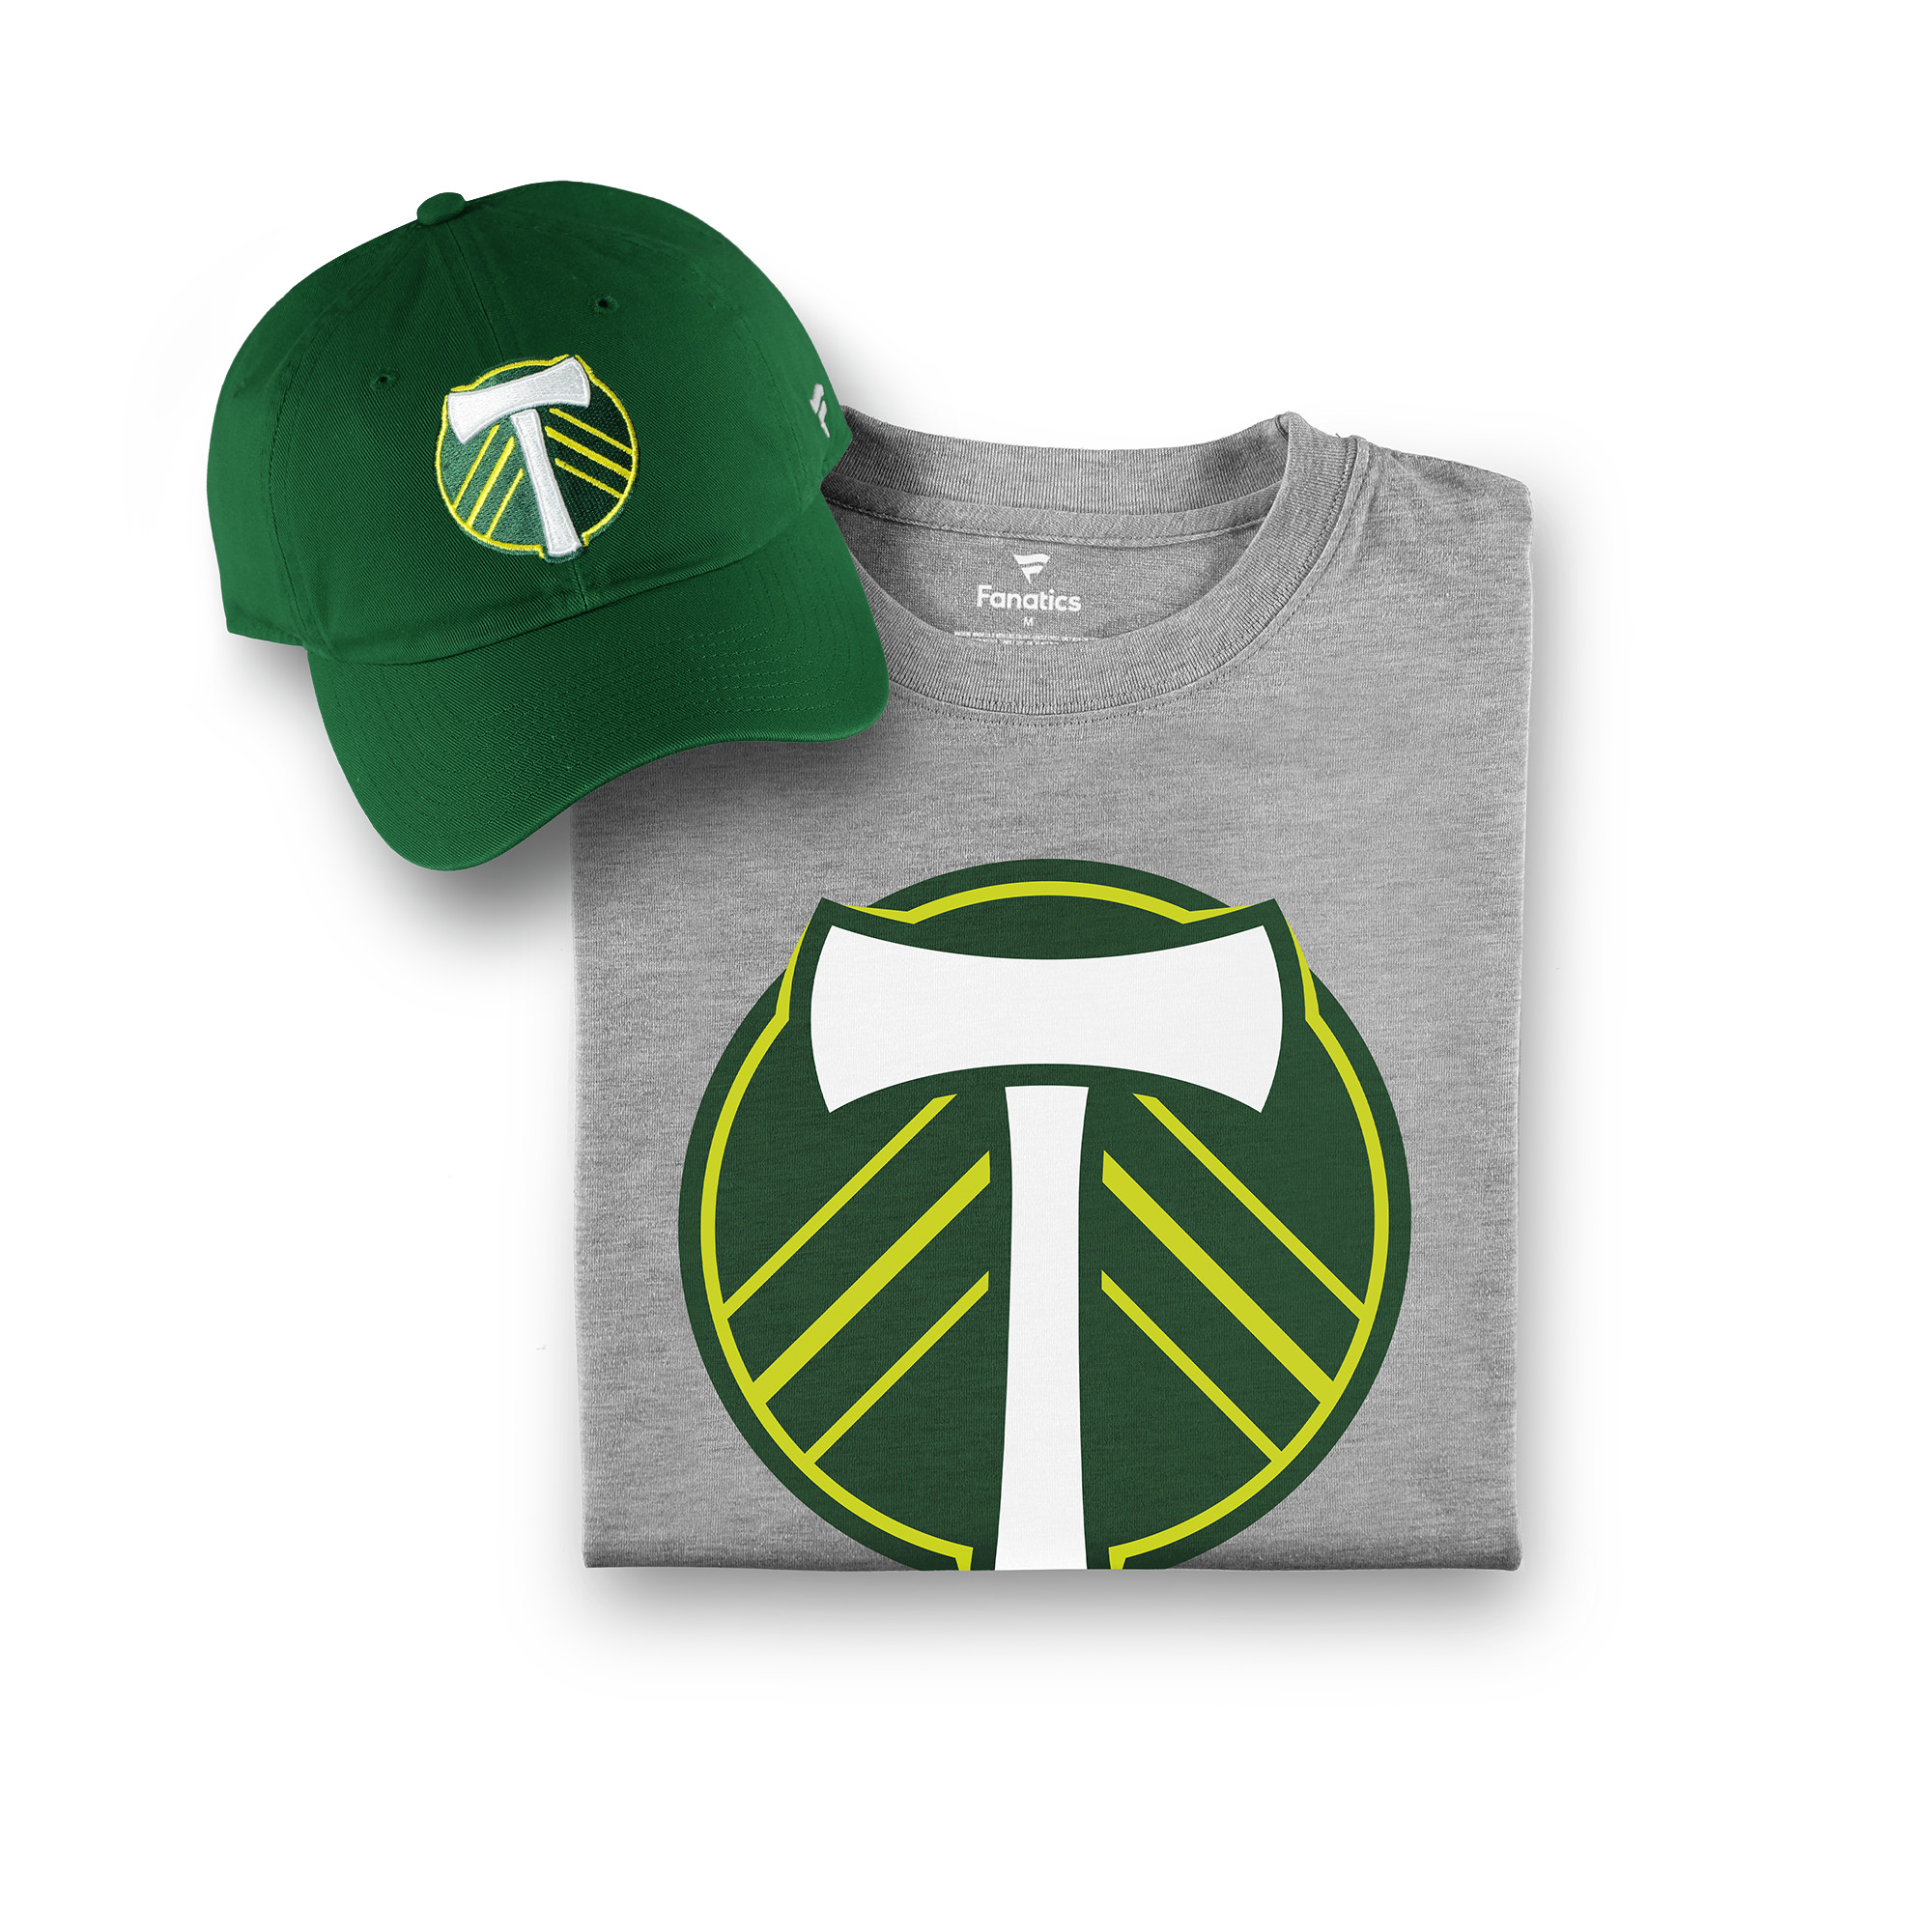 Portland Timbers Fanatics Branded T-Shirt & Adjustable Hat Combo Set - Forest Green/Gray